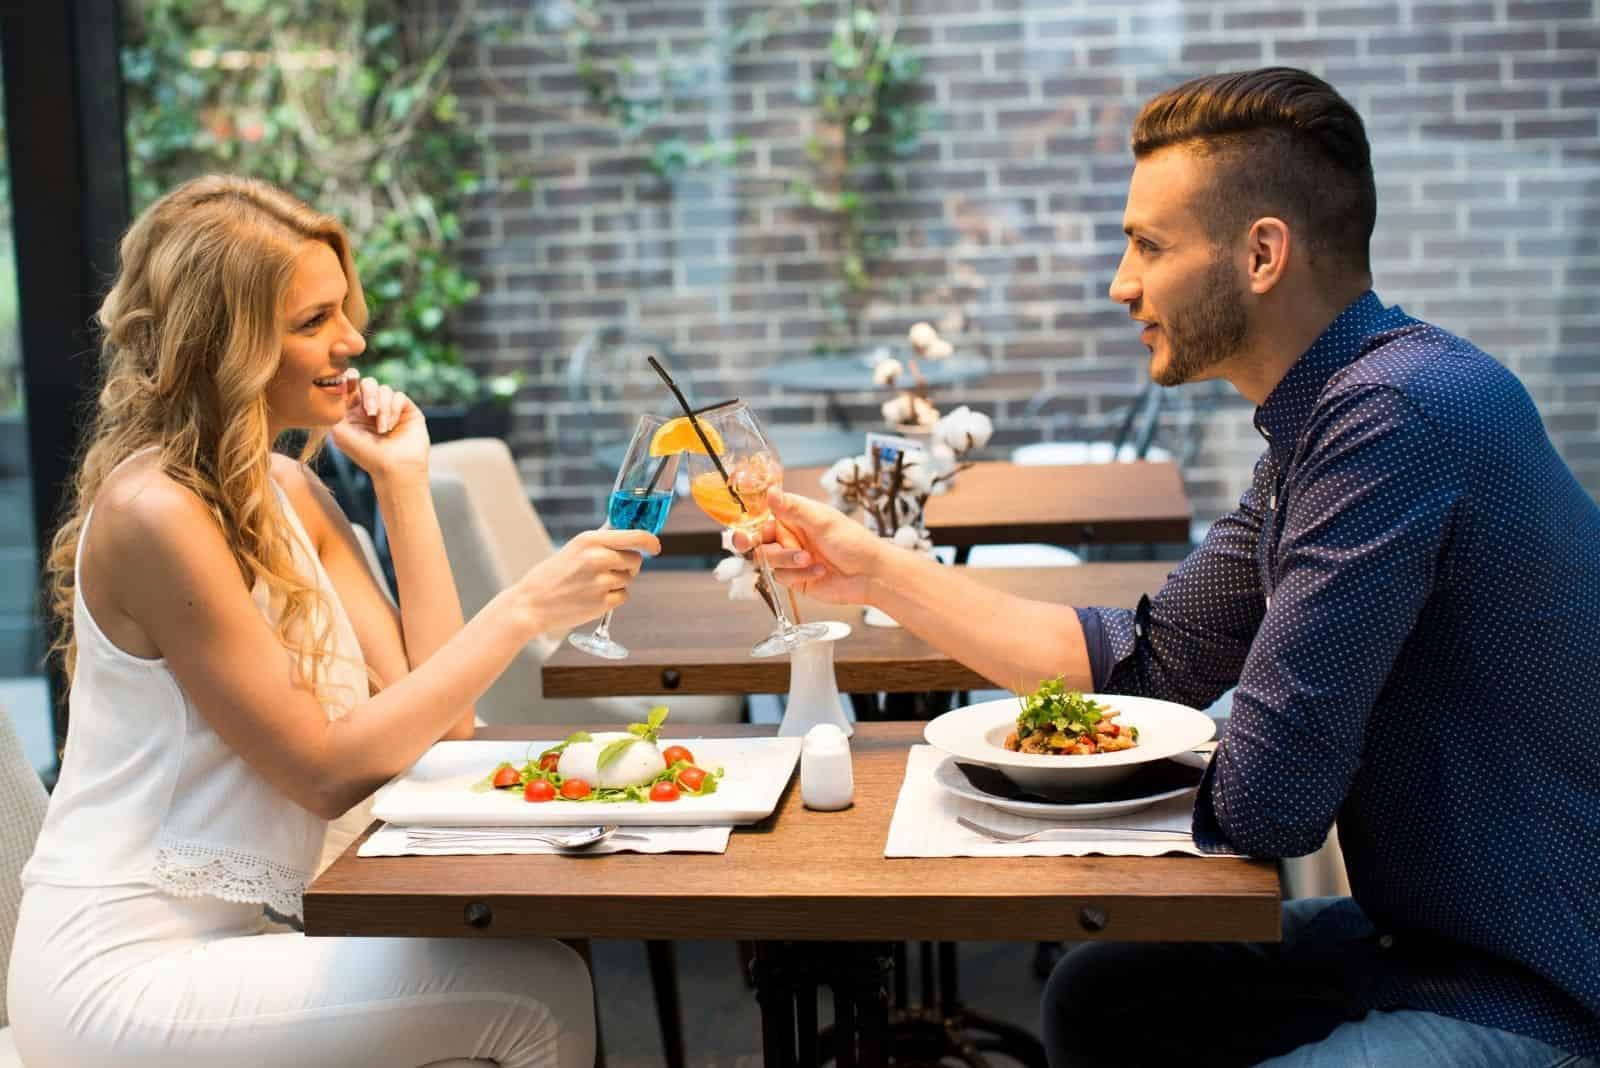 beautiful couple in a date at a restaurant clinking their wine glass